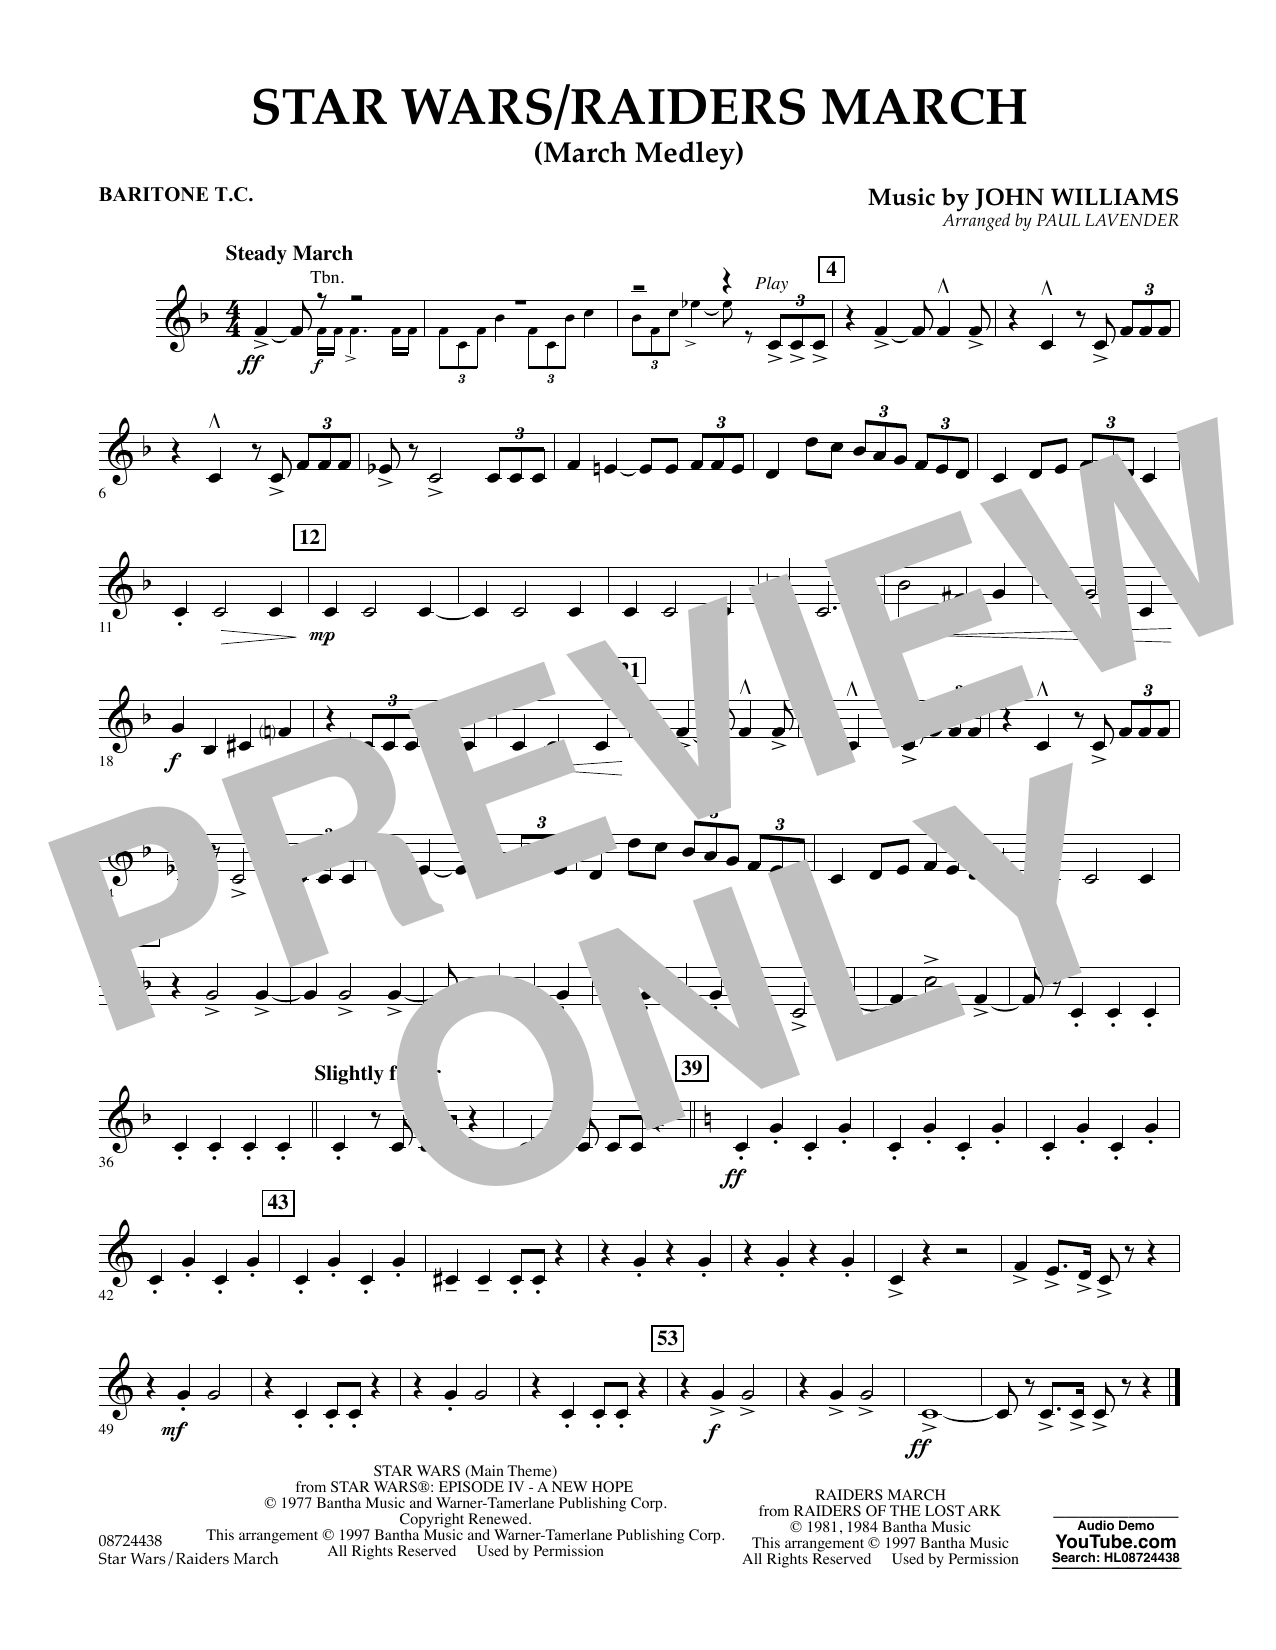 Star Wars/Raiders March - Baritone T.C. Sheet Music